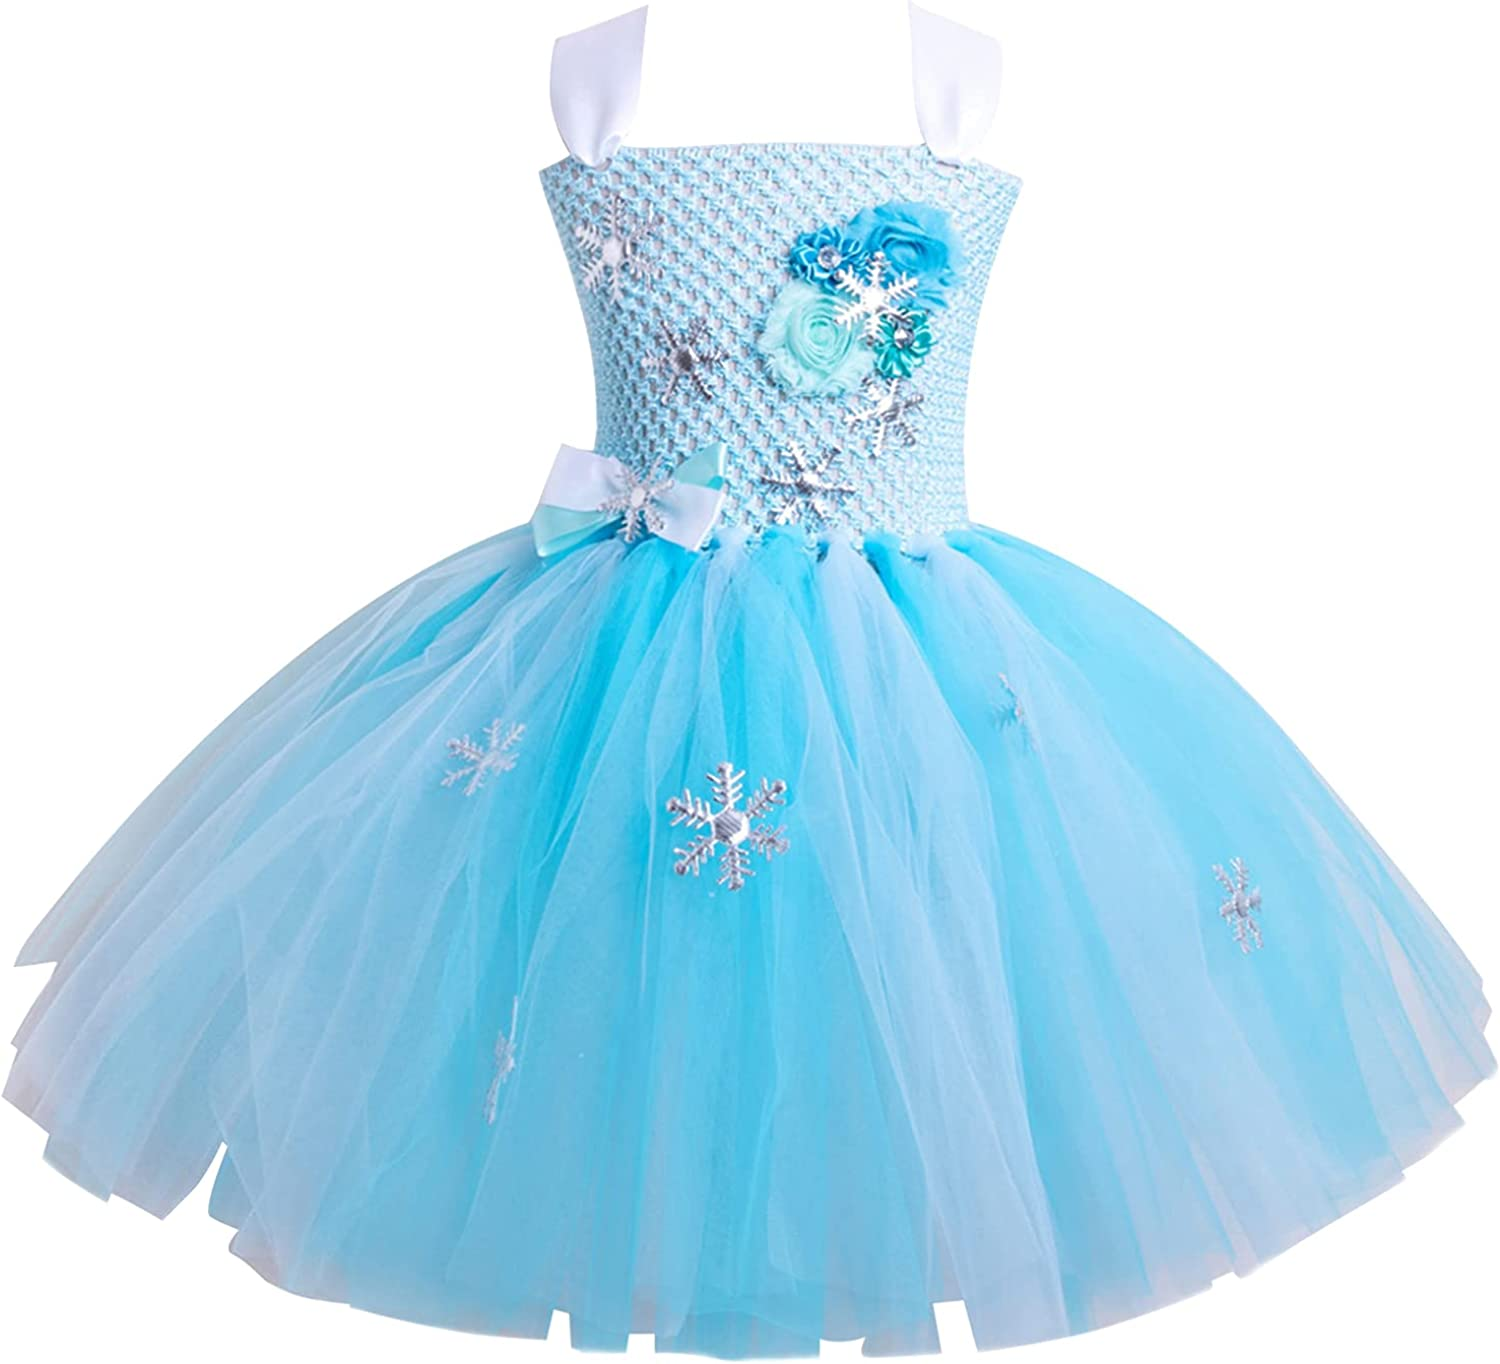 Aislor Kids Girls Pageant Princess Dress Wedding Party Baptism Bridesmaid Snowflake Sequins Mesh Tulle Dress Ball Gown